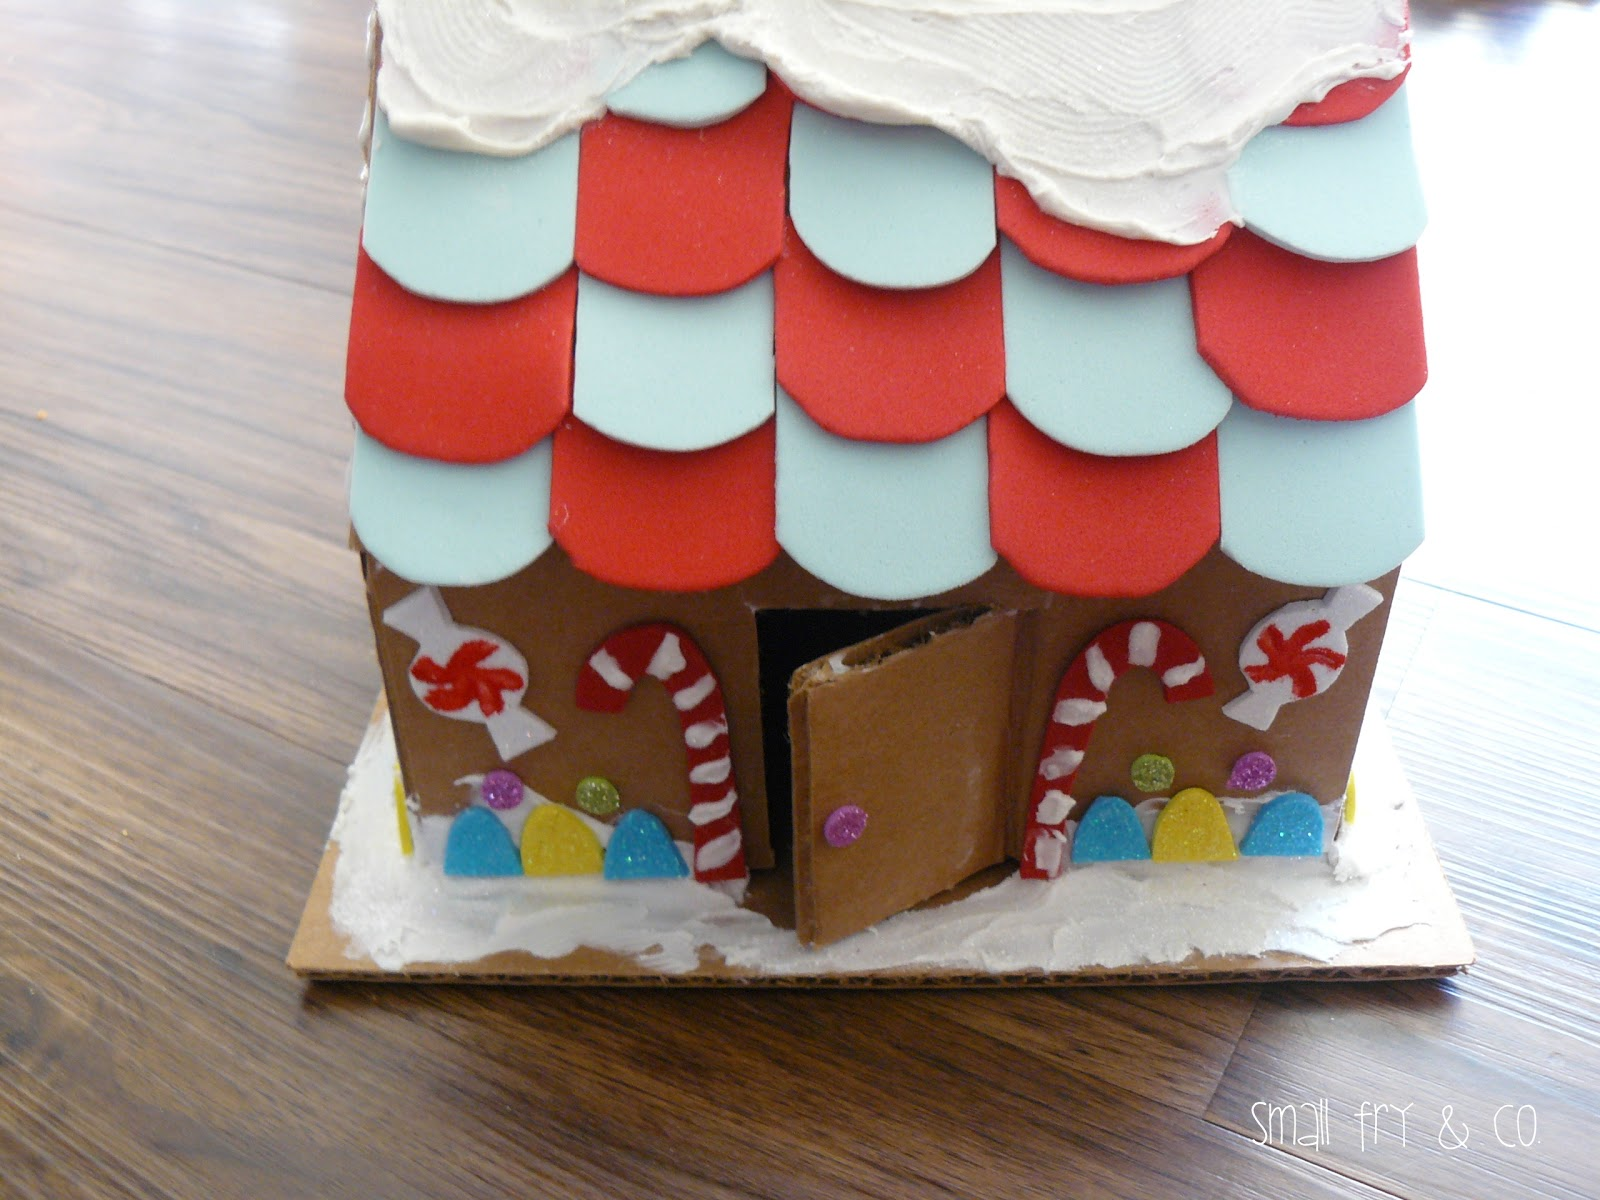 Small Fry & Co Not Your Ordinary Gingerbread House